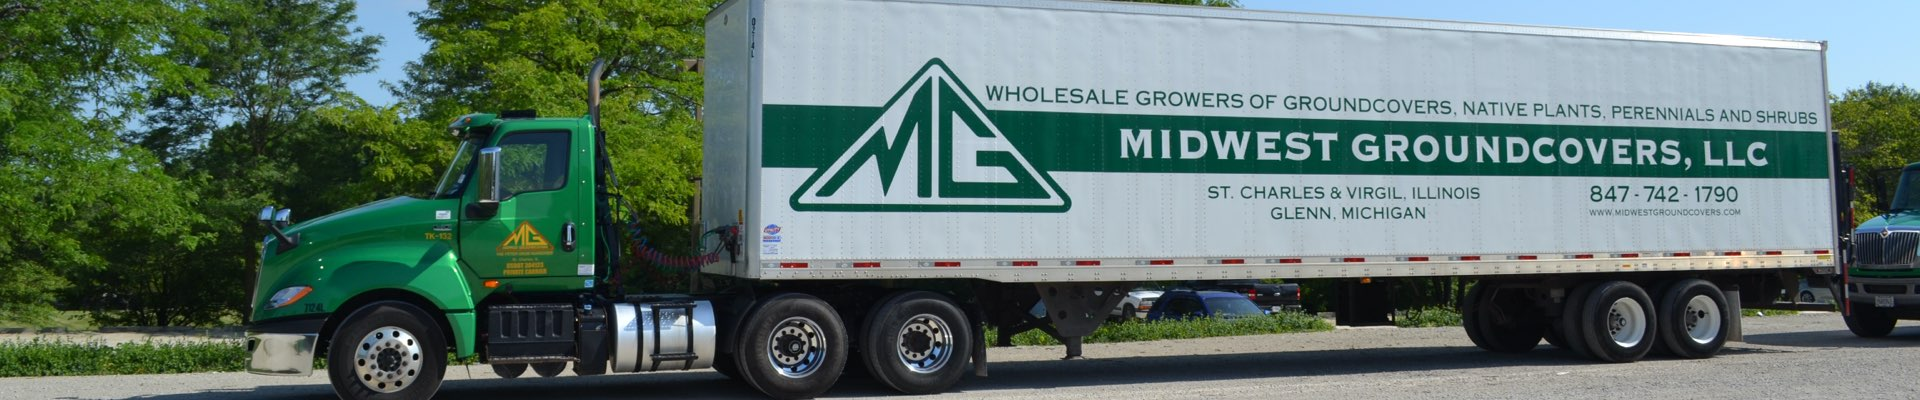 MGC shipping services banner